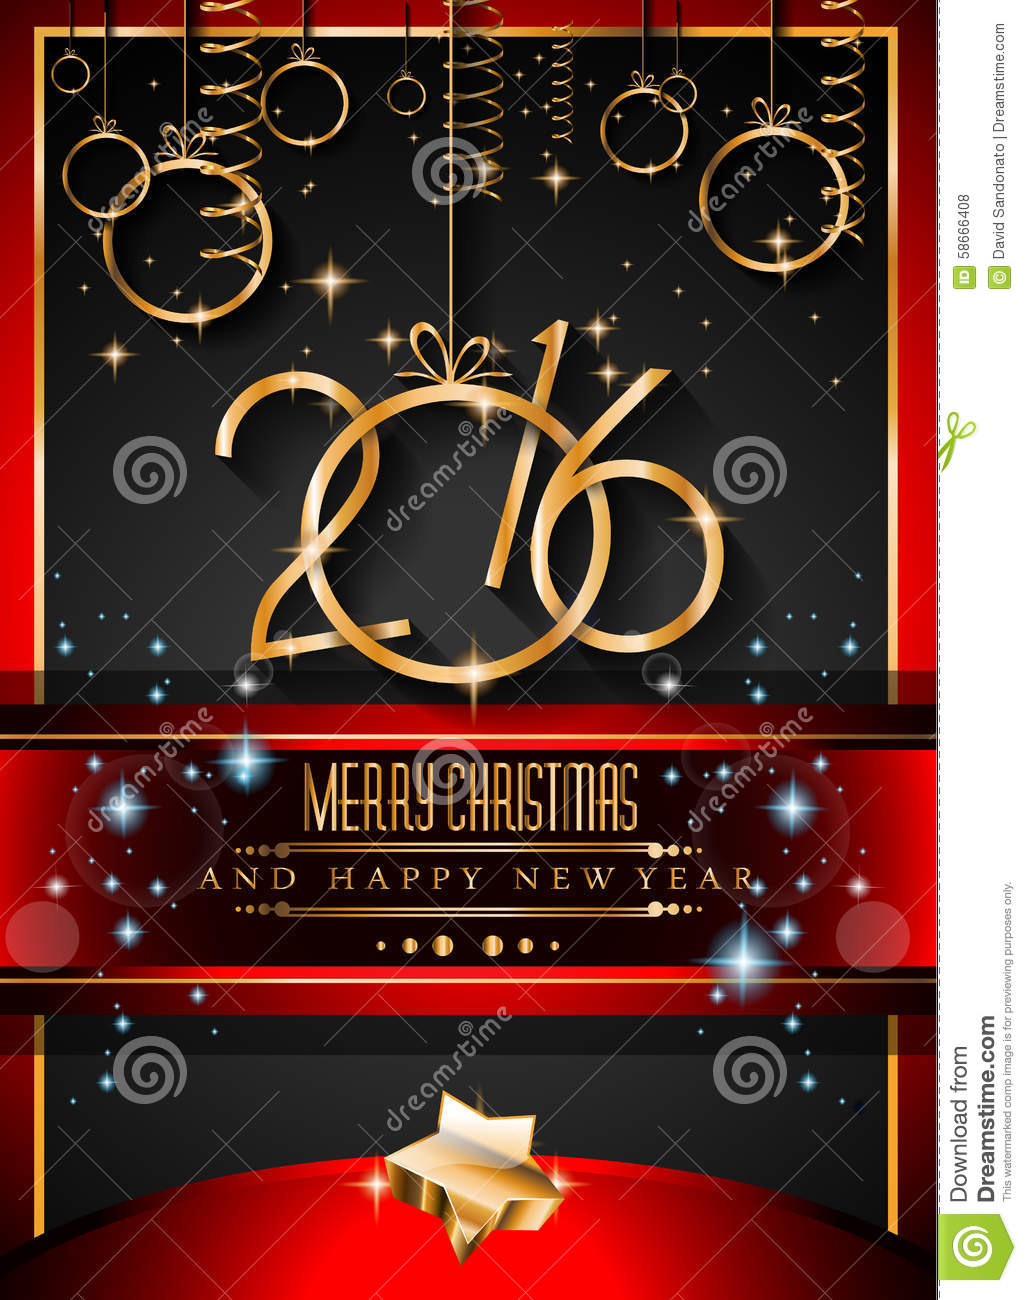 happy new year background for your christmas invitations 2016 happy new year background for your christmas invitations